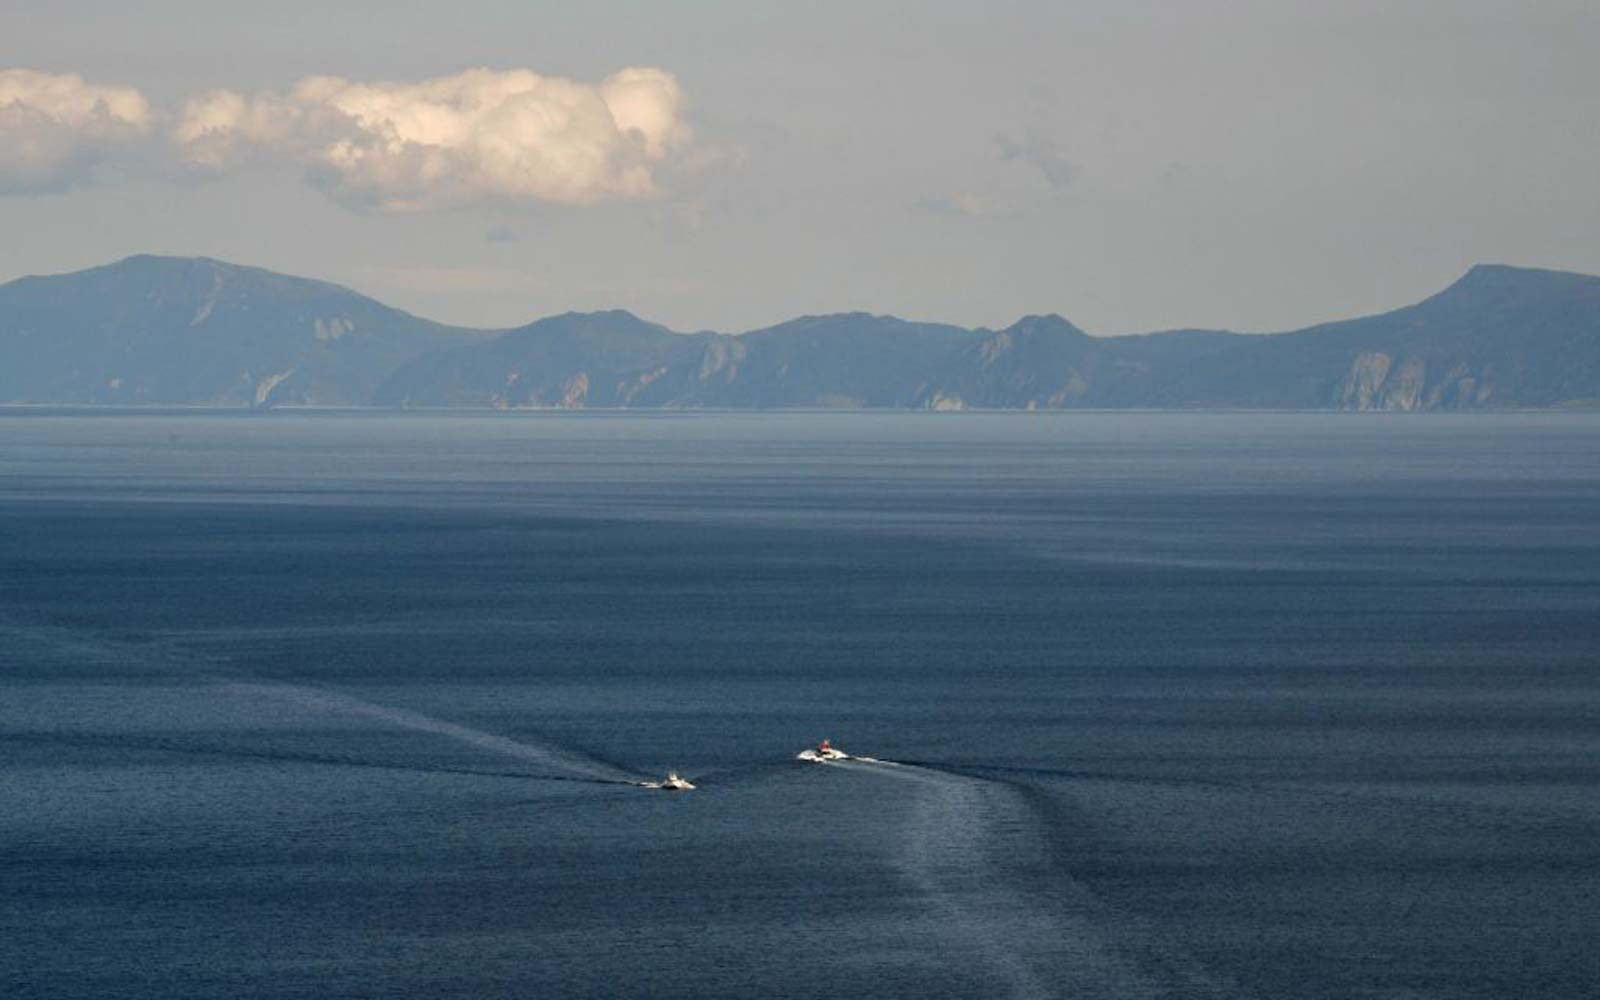 This picture taken on October 10, 2018 shows Kunashiri island, part of an archipelago under Russian control, visible from the Rausu Kunashiri Observatory Deck in Rausu, Hokkaido prefecture